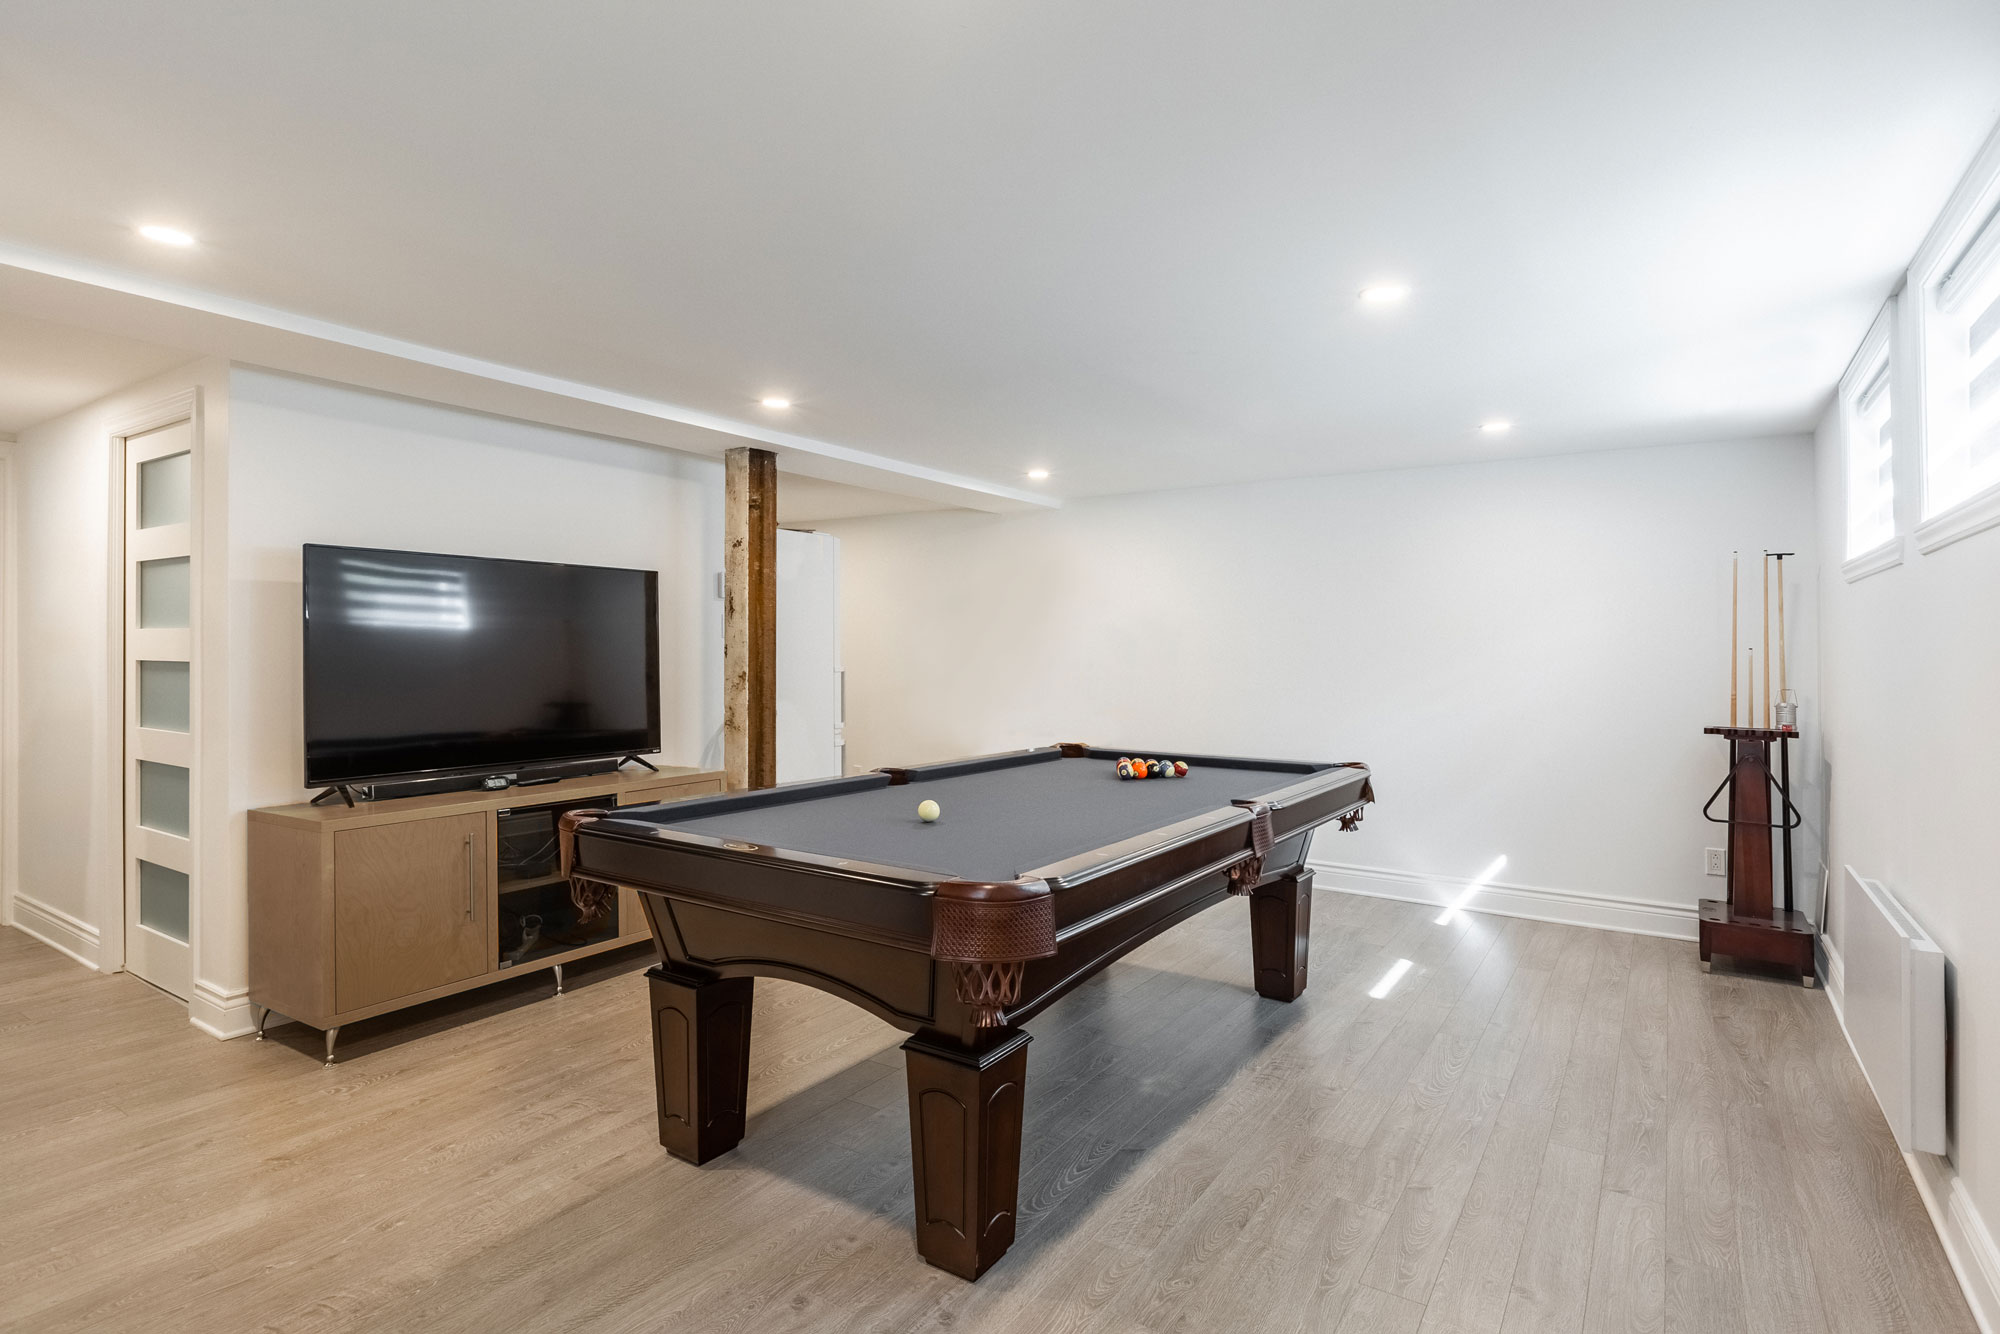 basement renovation with pool table and television